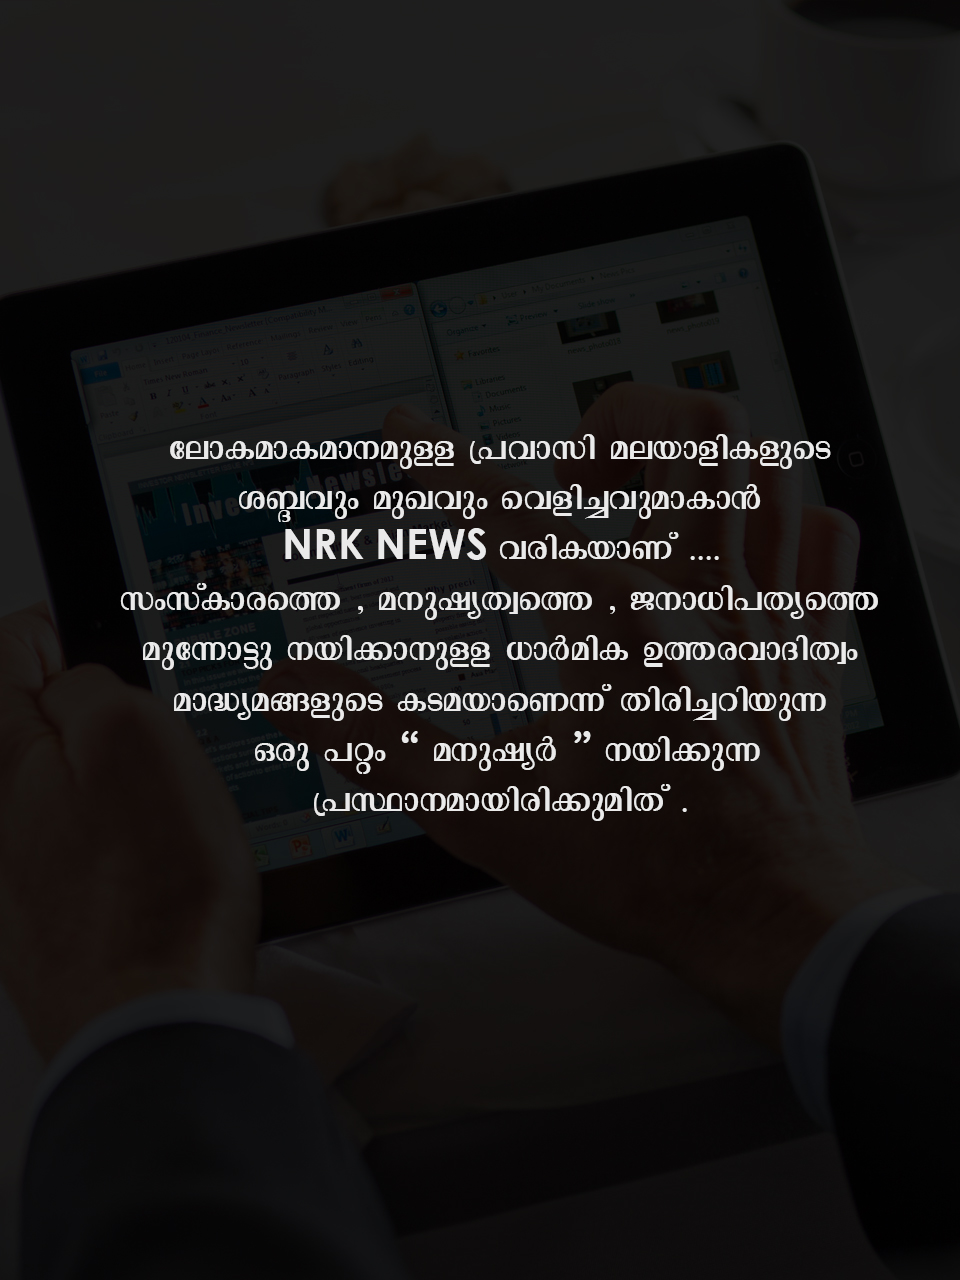 Nrk News Exclusively For Non Residential Keralites